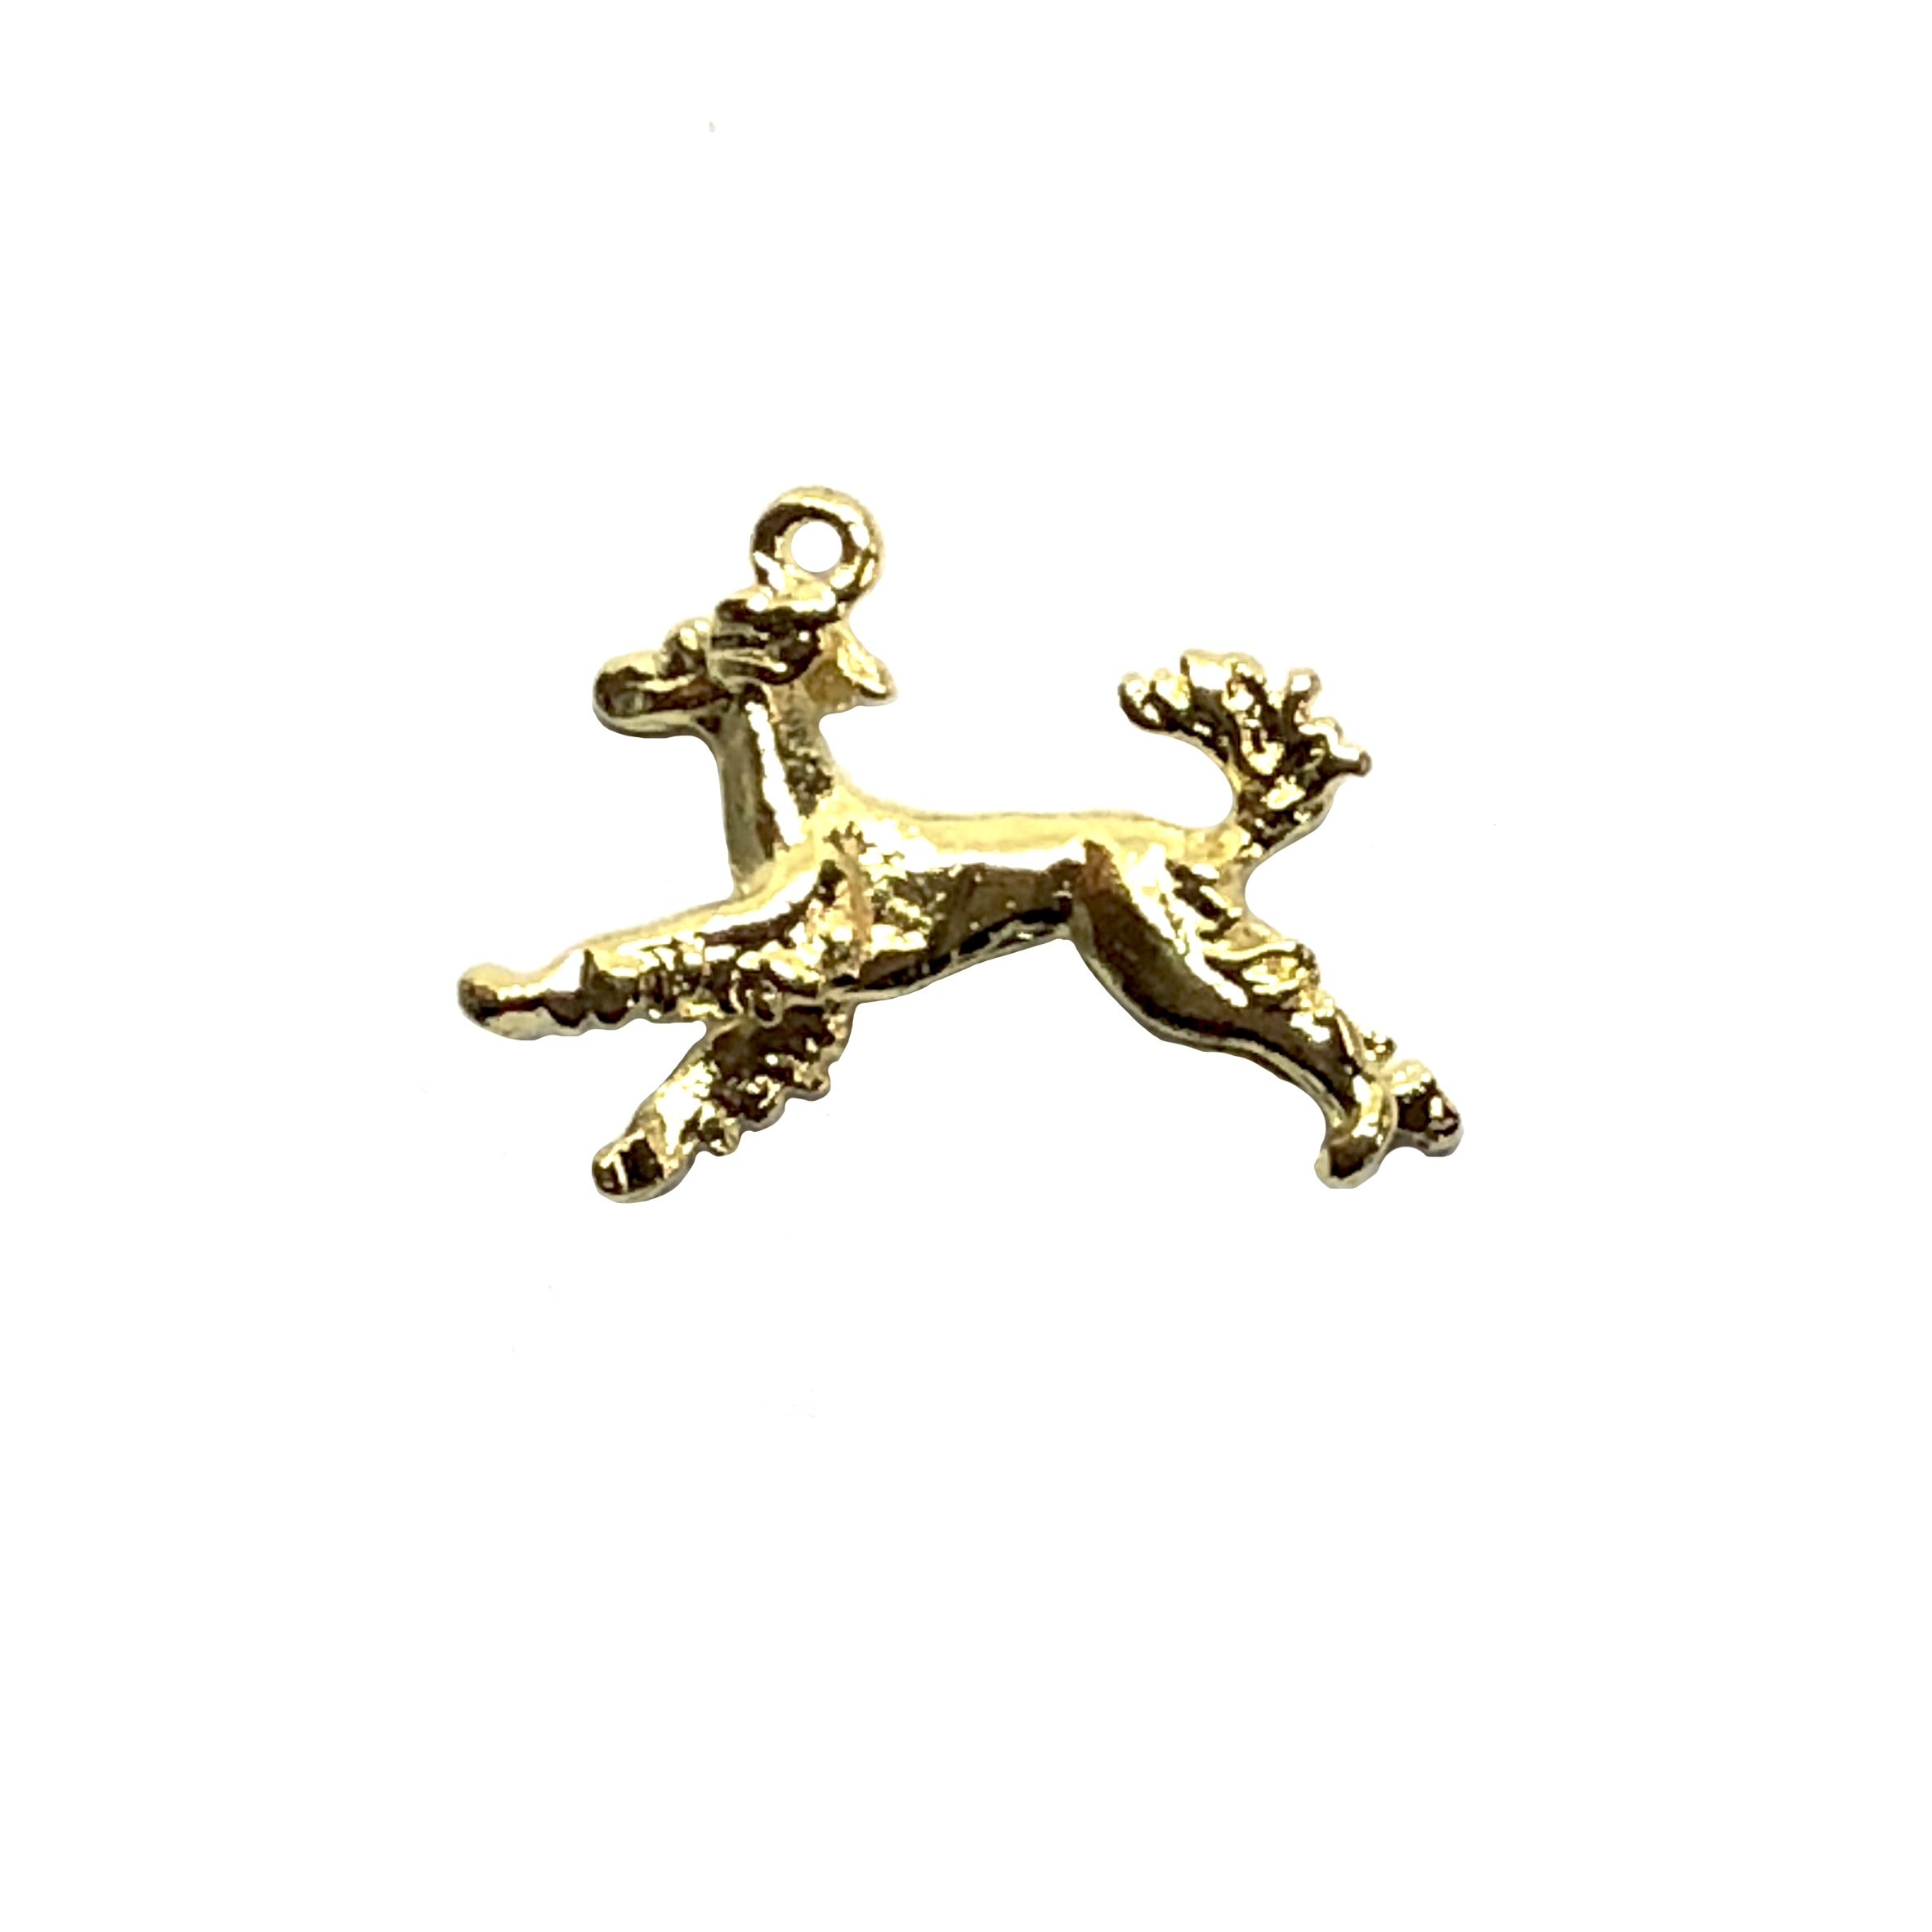 Irish setter charm, 22K gold finish pewter, B'sue by 1928, jewelry charm, dog stamping, dog, dog charm, charm, Irish setter, gold, lead free pewter, gold finish, US made, designer jewelry, vintage supplies, B'sue Boutiques, 24x20mm, 08530